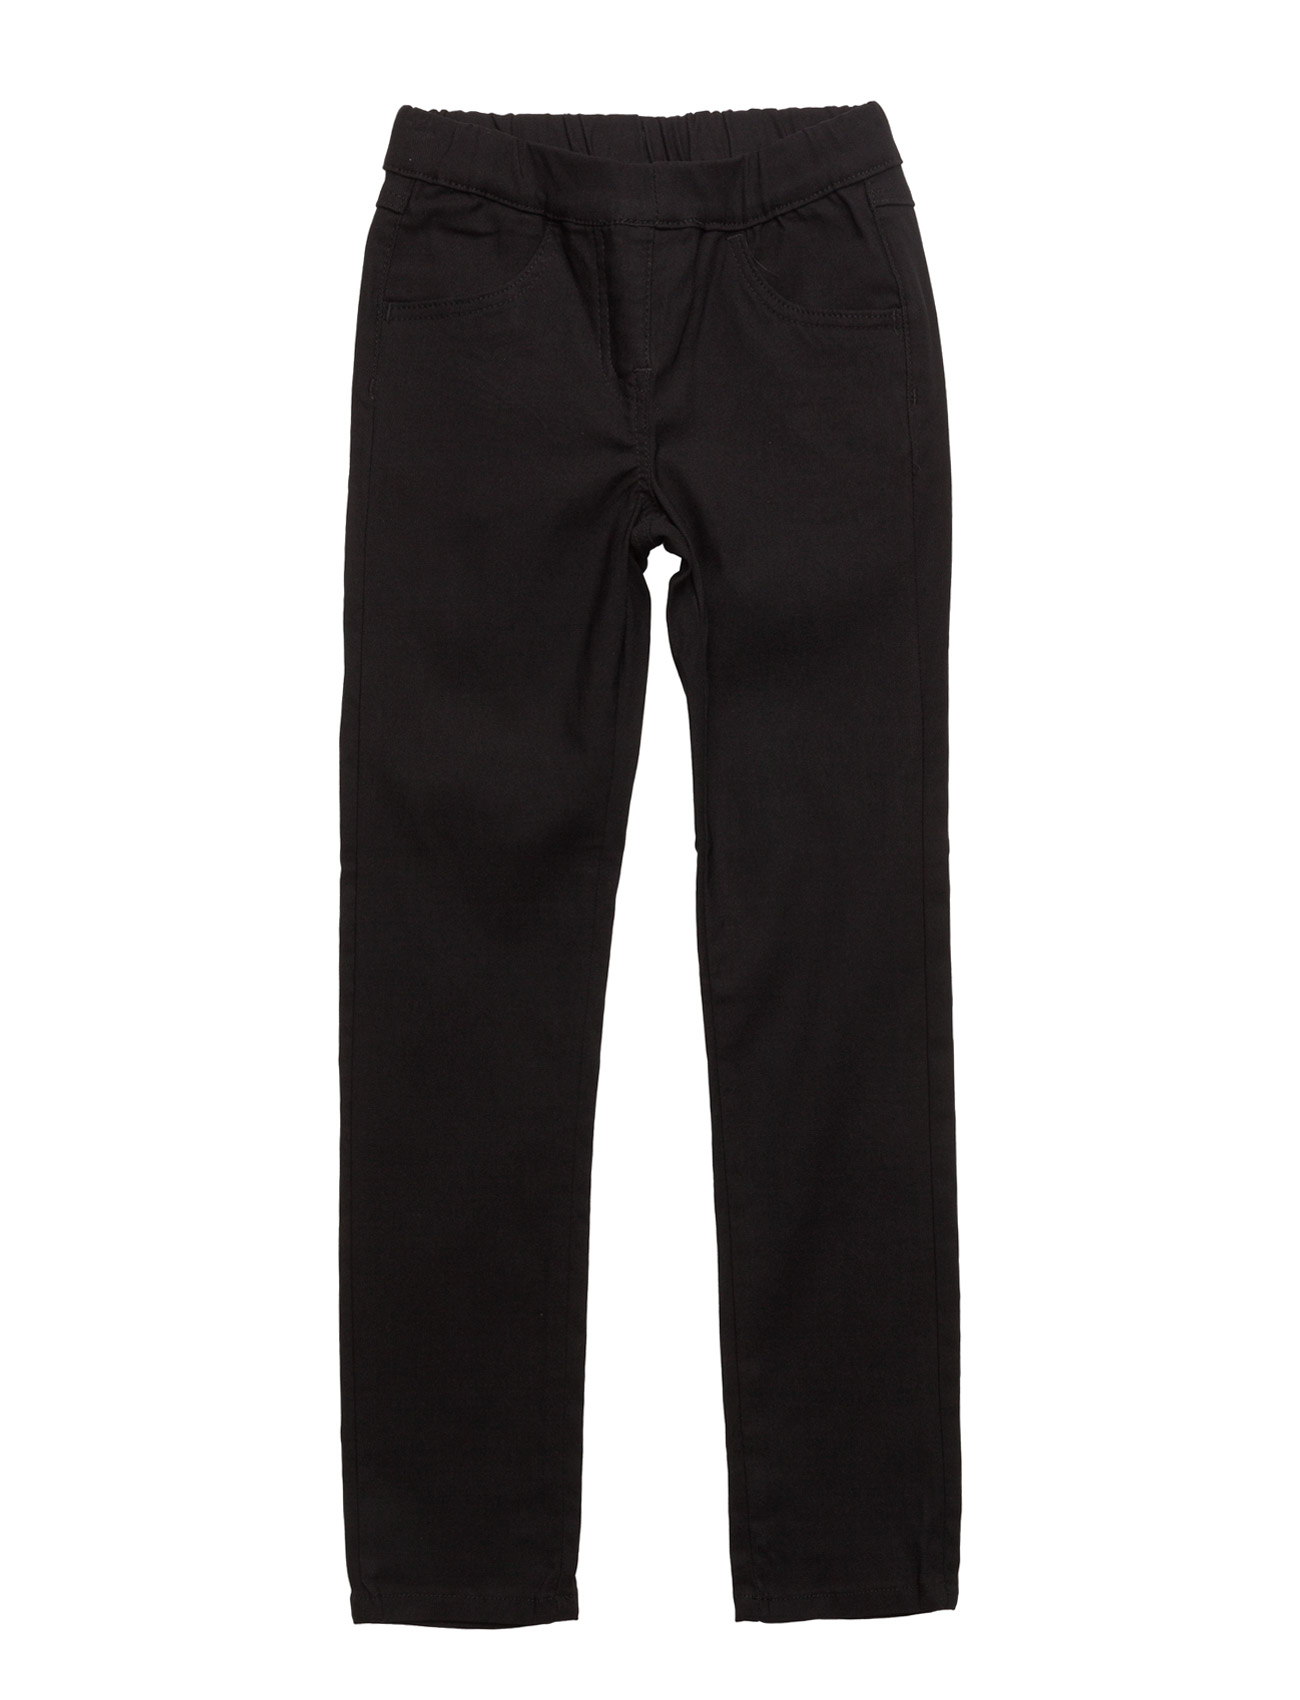 Jena Twill Pants Kids-Up  til Børn i Sort